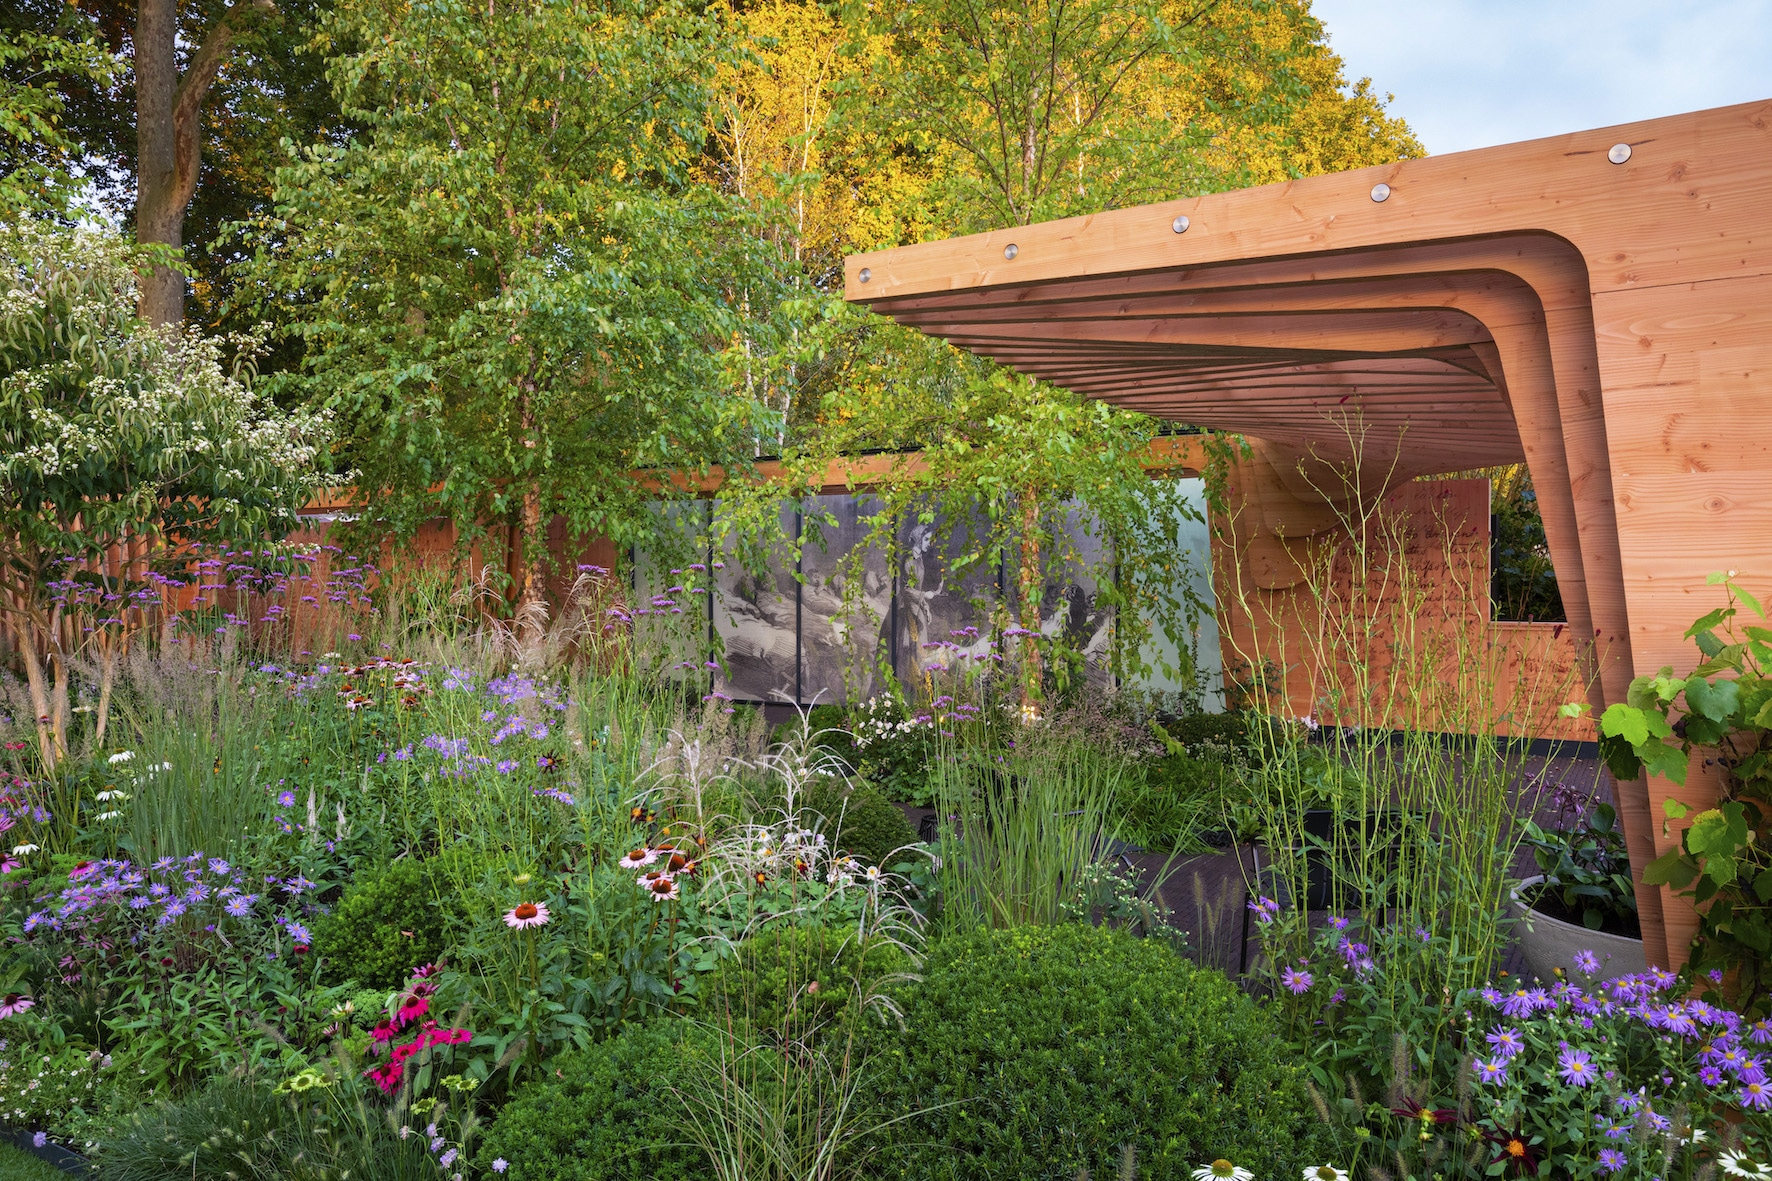 The Florence Nightingale Garden – A Celebration of Modern Nursing by Robert Myers – RHS Chelsea 2021